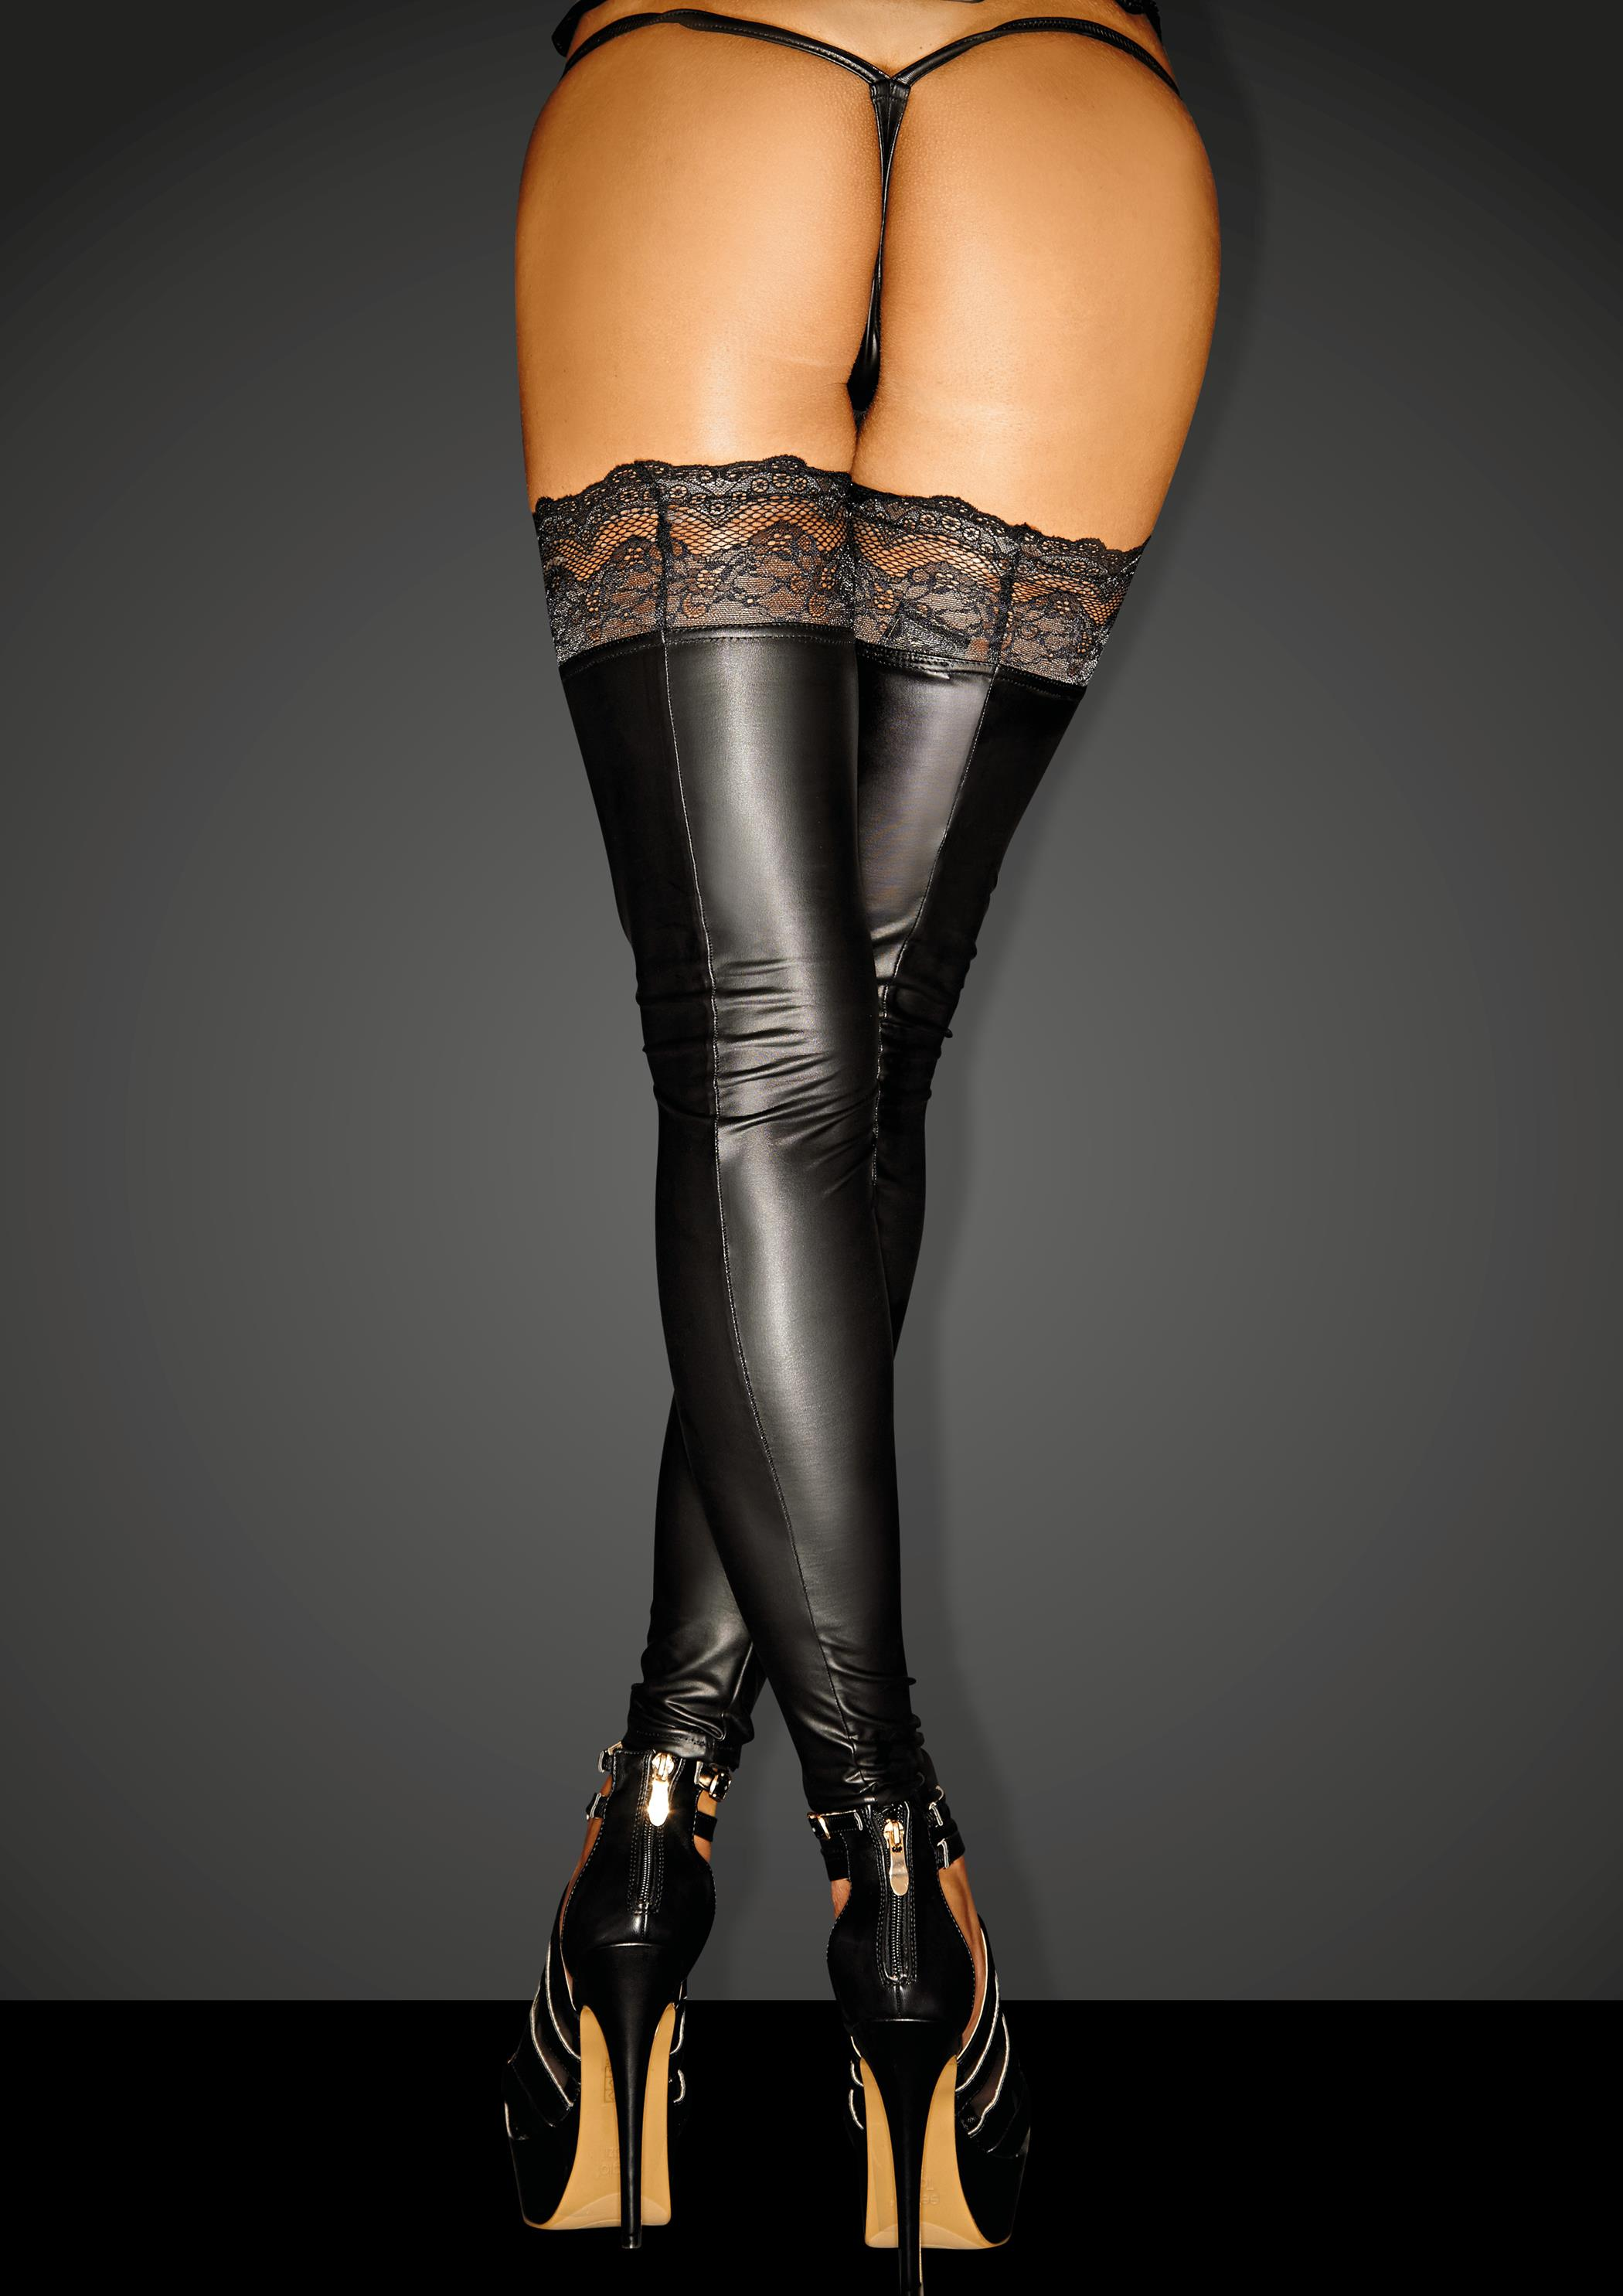 F135 Powerwetlook stockings with siliconed lace SUPERSTAR